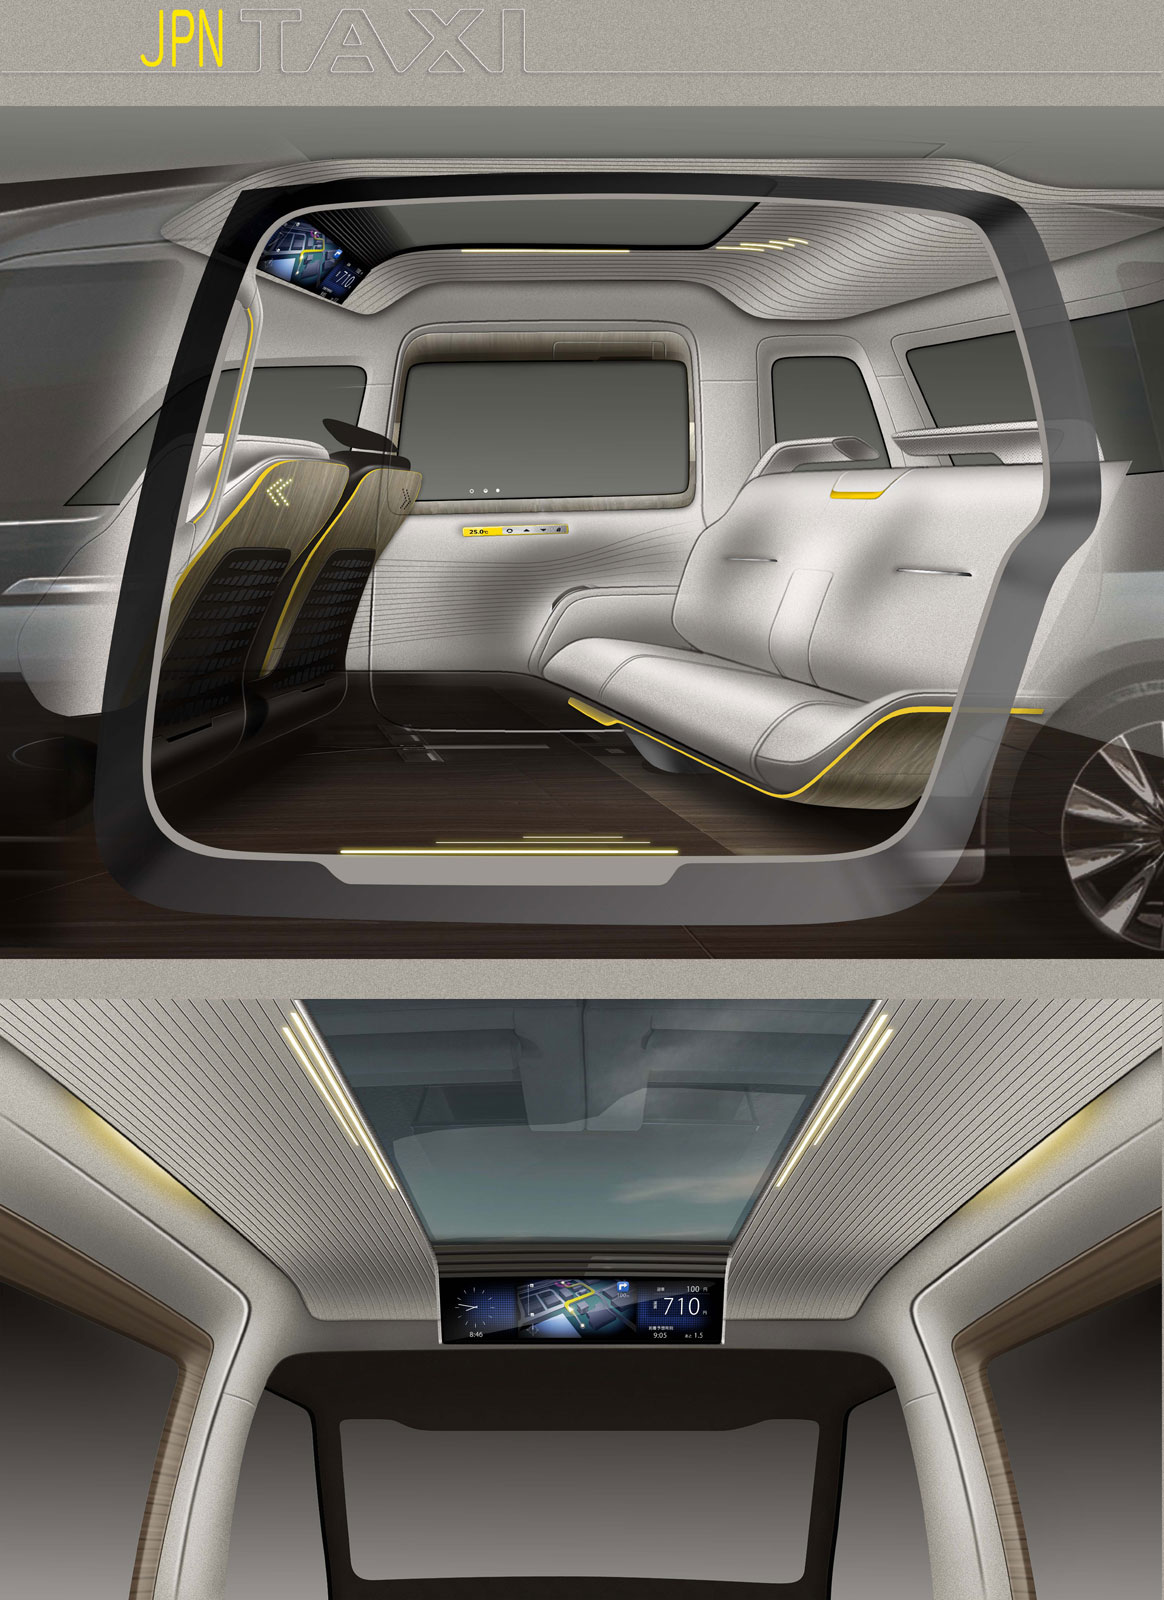 toyota jpn taxi concept interior design sketches car body design. Black Bedroom Furniture Sets. Home Design Ideas